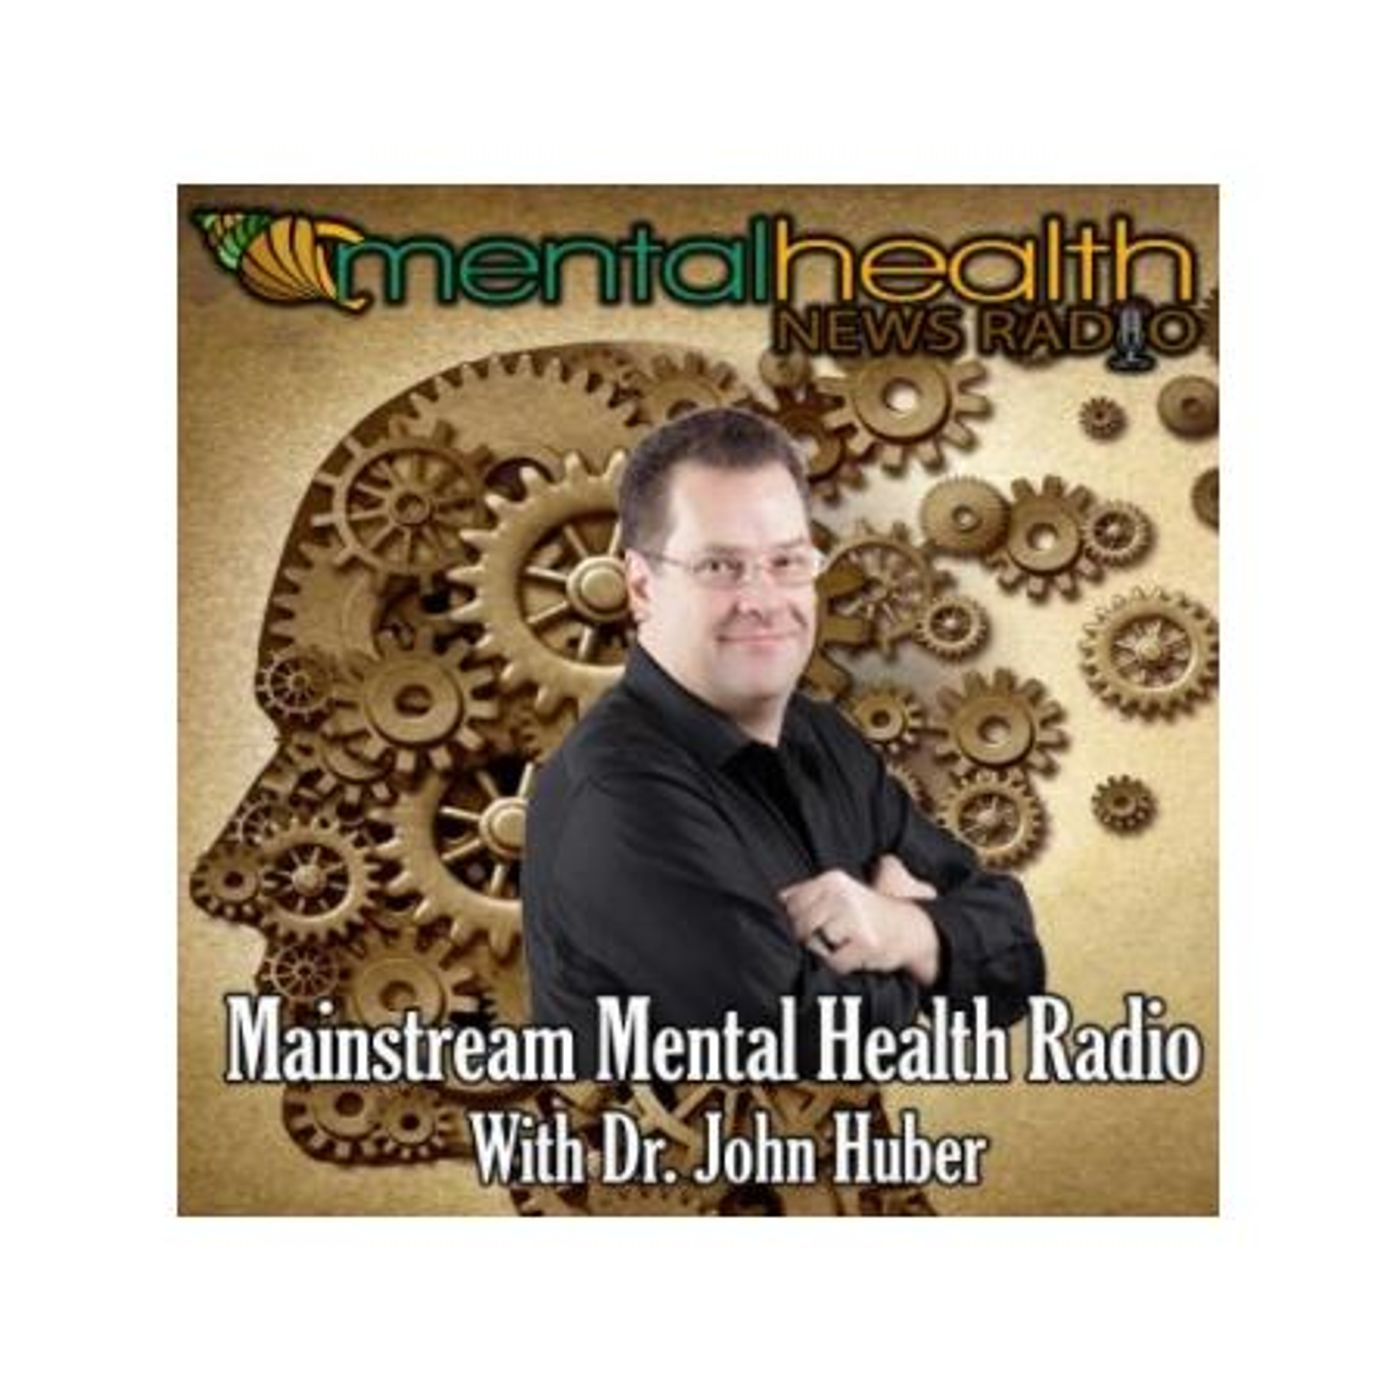 Mental Health News Radio - Could Mental Health Go Mainstream? Get to Know Dr. John Huber